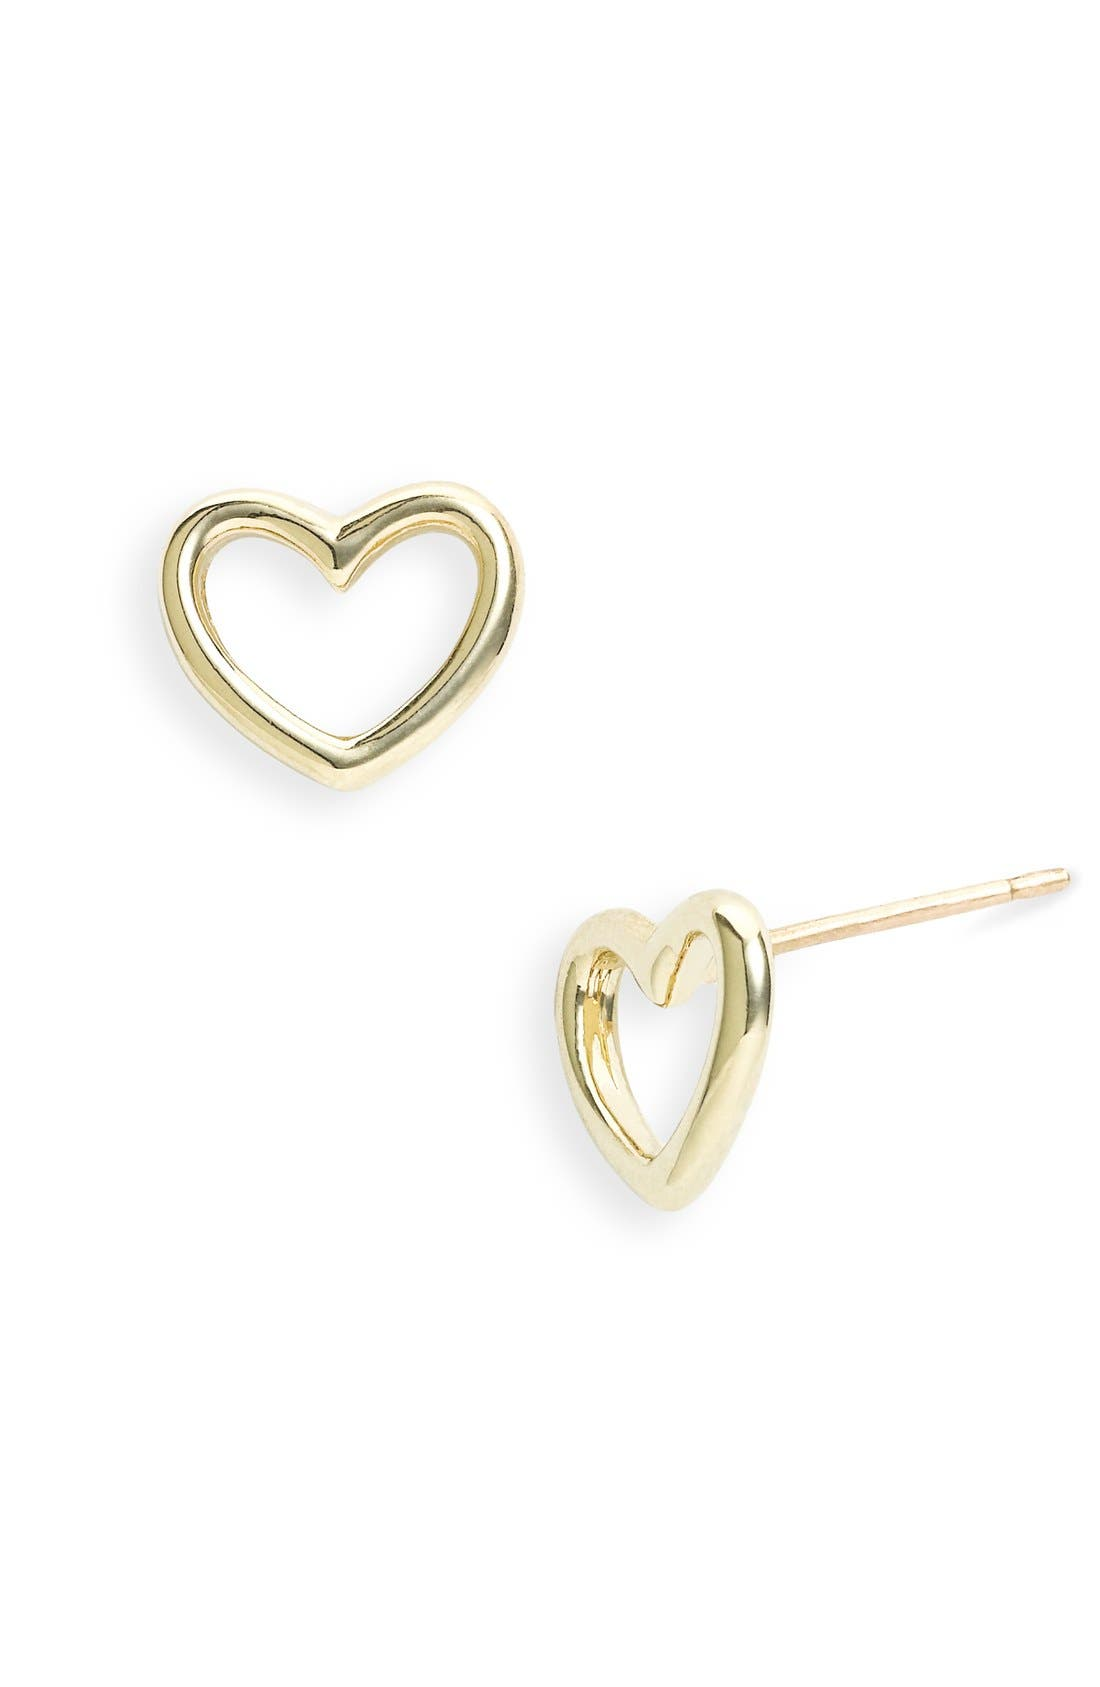 Alternate Image 1 Selected - MARC BY MARC JACOBS 'Love Edge' Heart Stud Earrings